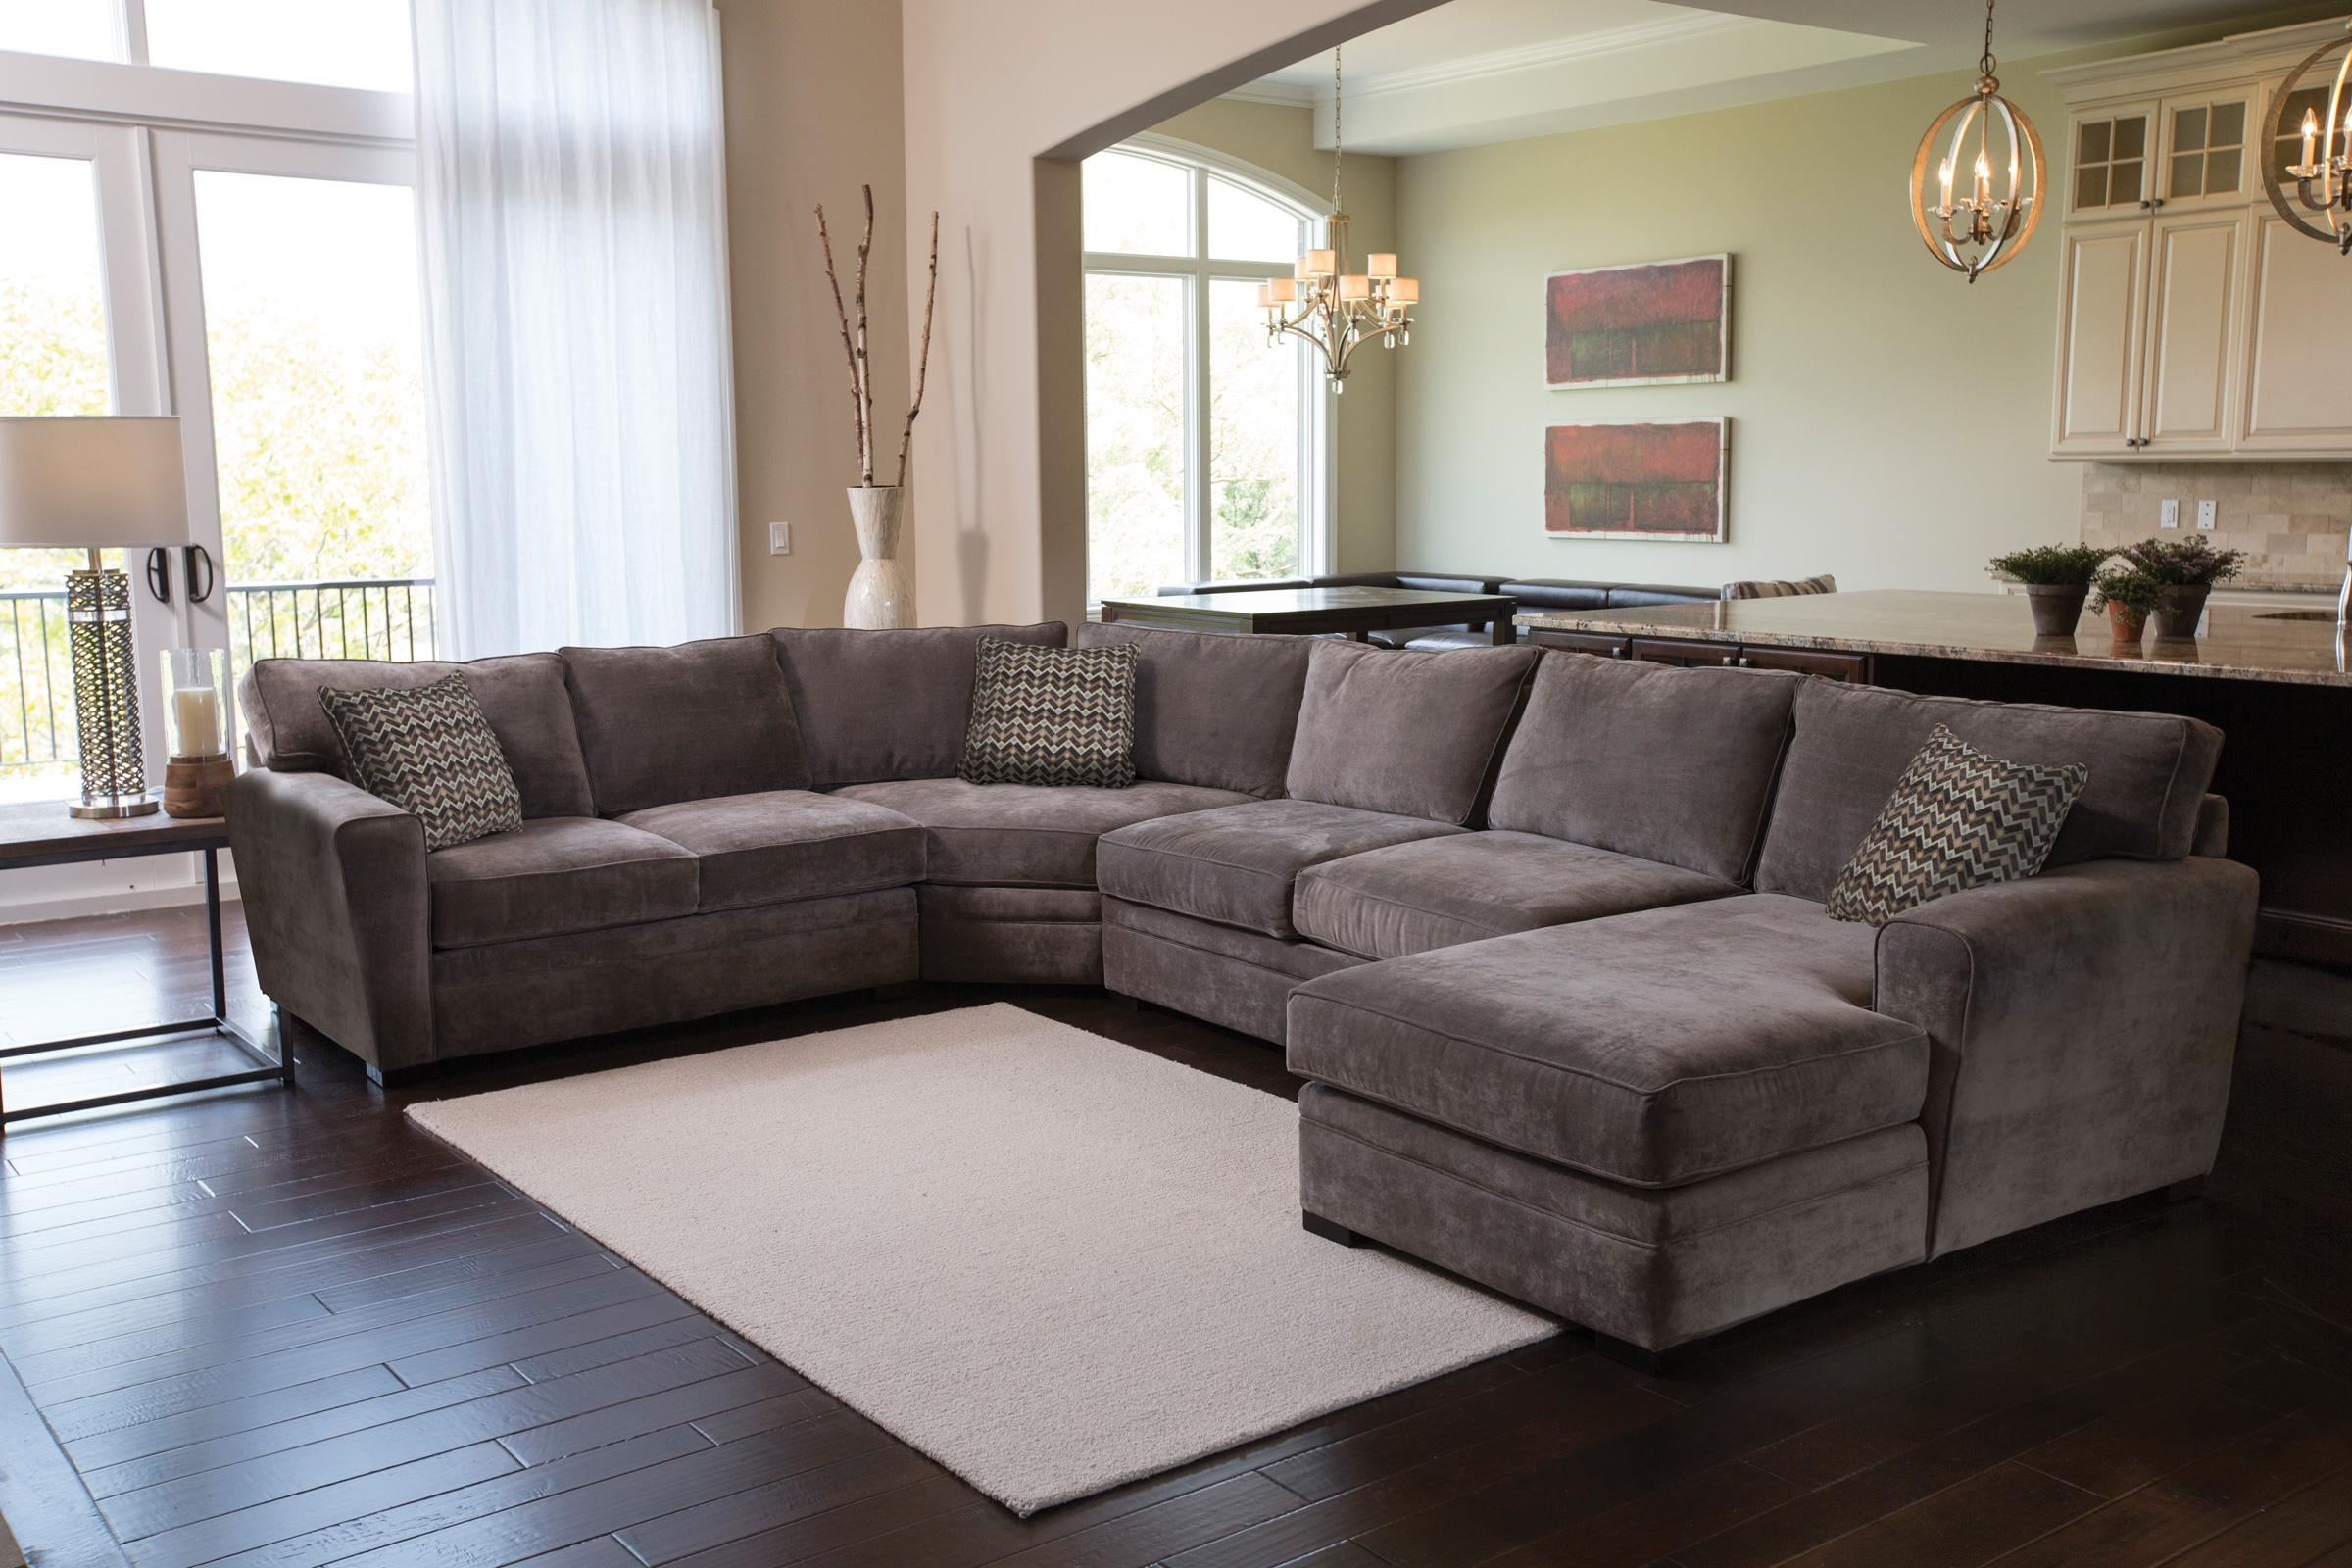 Gardner White Sectional Sofas Inside Latest Breezejonathan Louis Living Room Collection Gallery 13 Of 20